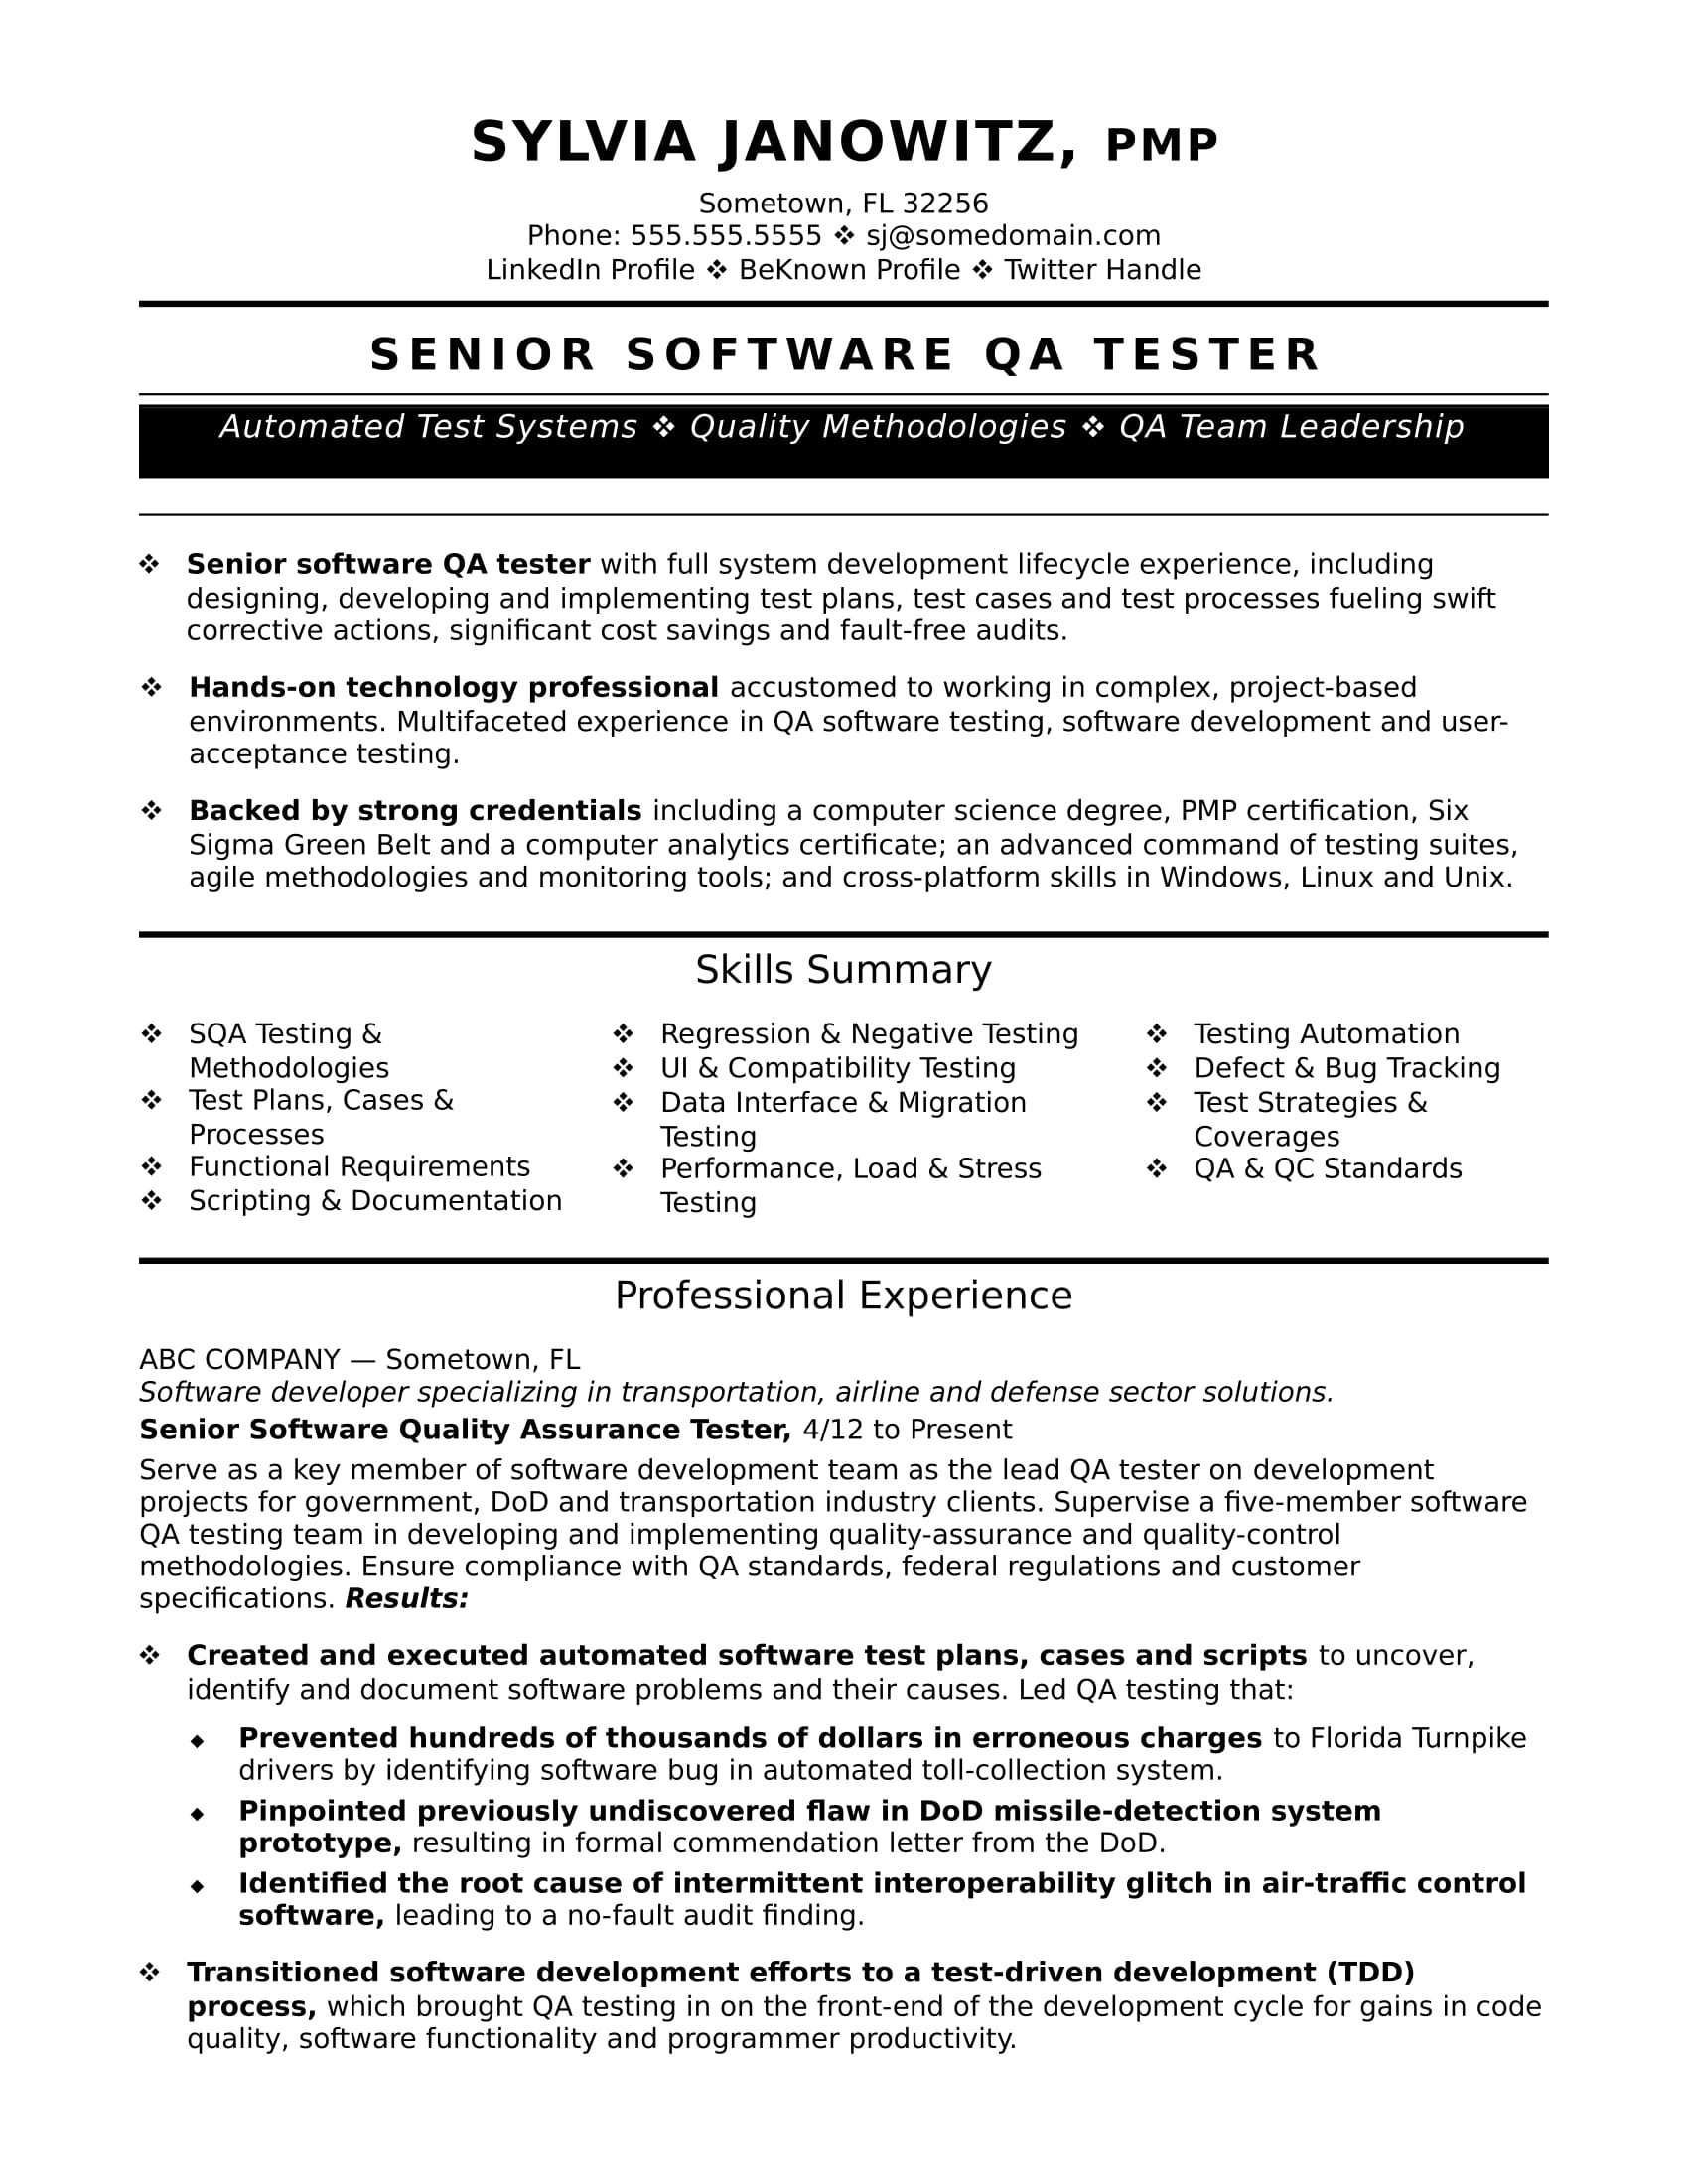 experienced qa software tester resume sample monster quality assurance analyst good Resume Quality Assurance Analyst Resume